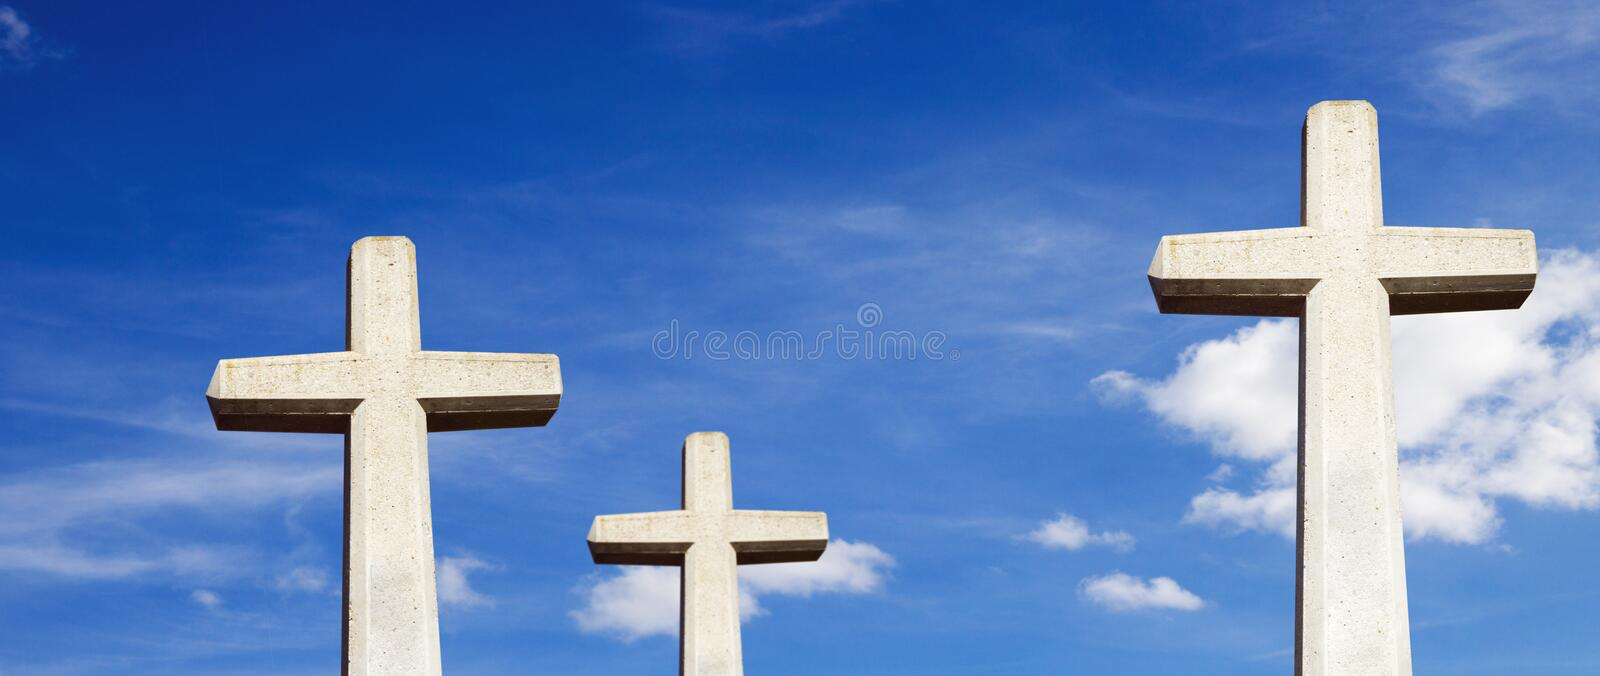 Three stone crosses royalty free stock image